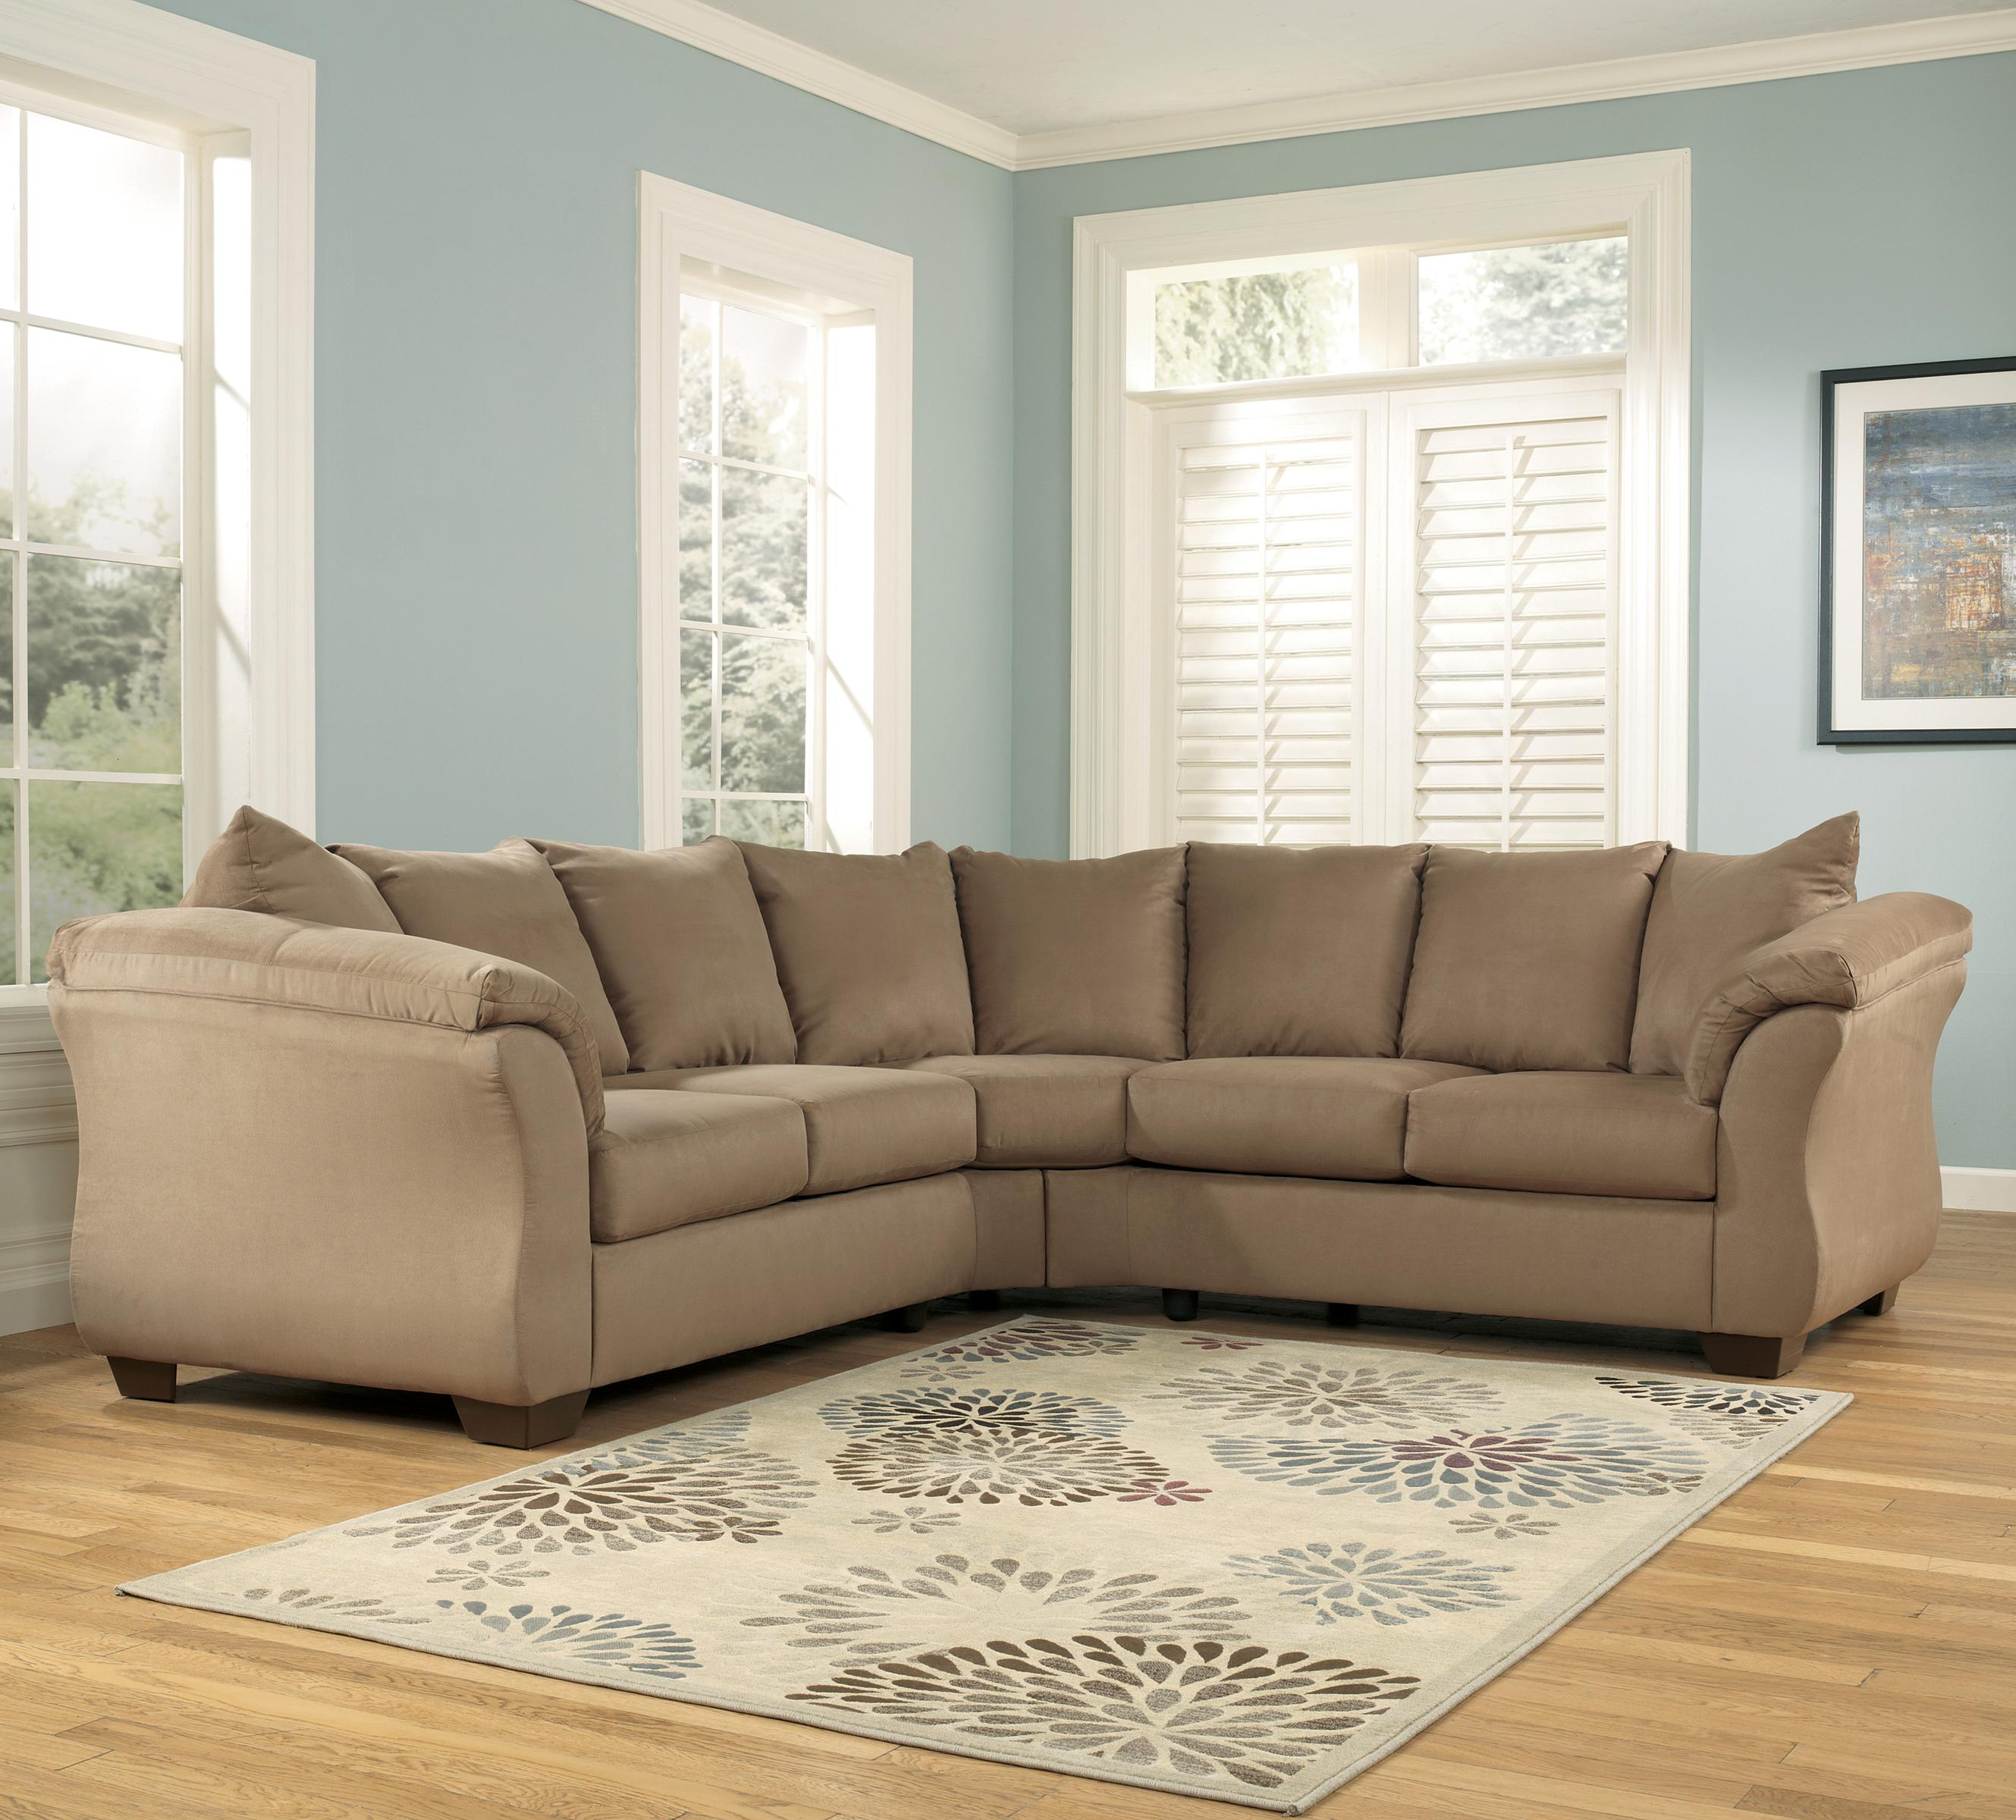 Signature Design by Ashley Darcy - Mocha Sectional Sofa - Item Number 7500255+7500256 : ashley furniture sectional couches - Sectionals, Sofas & Couches